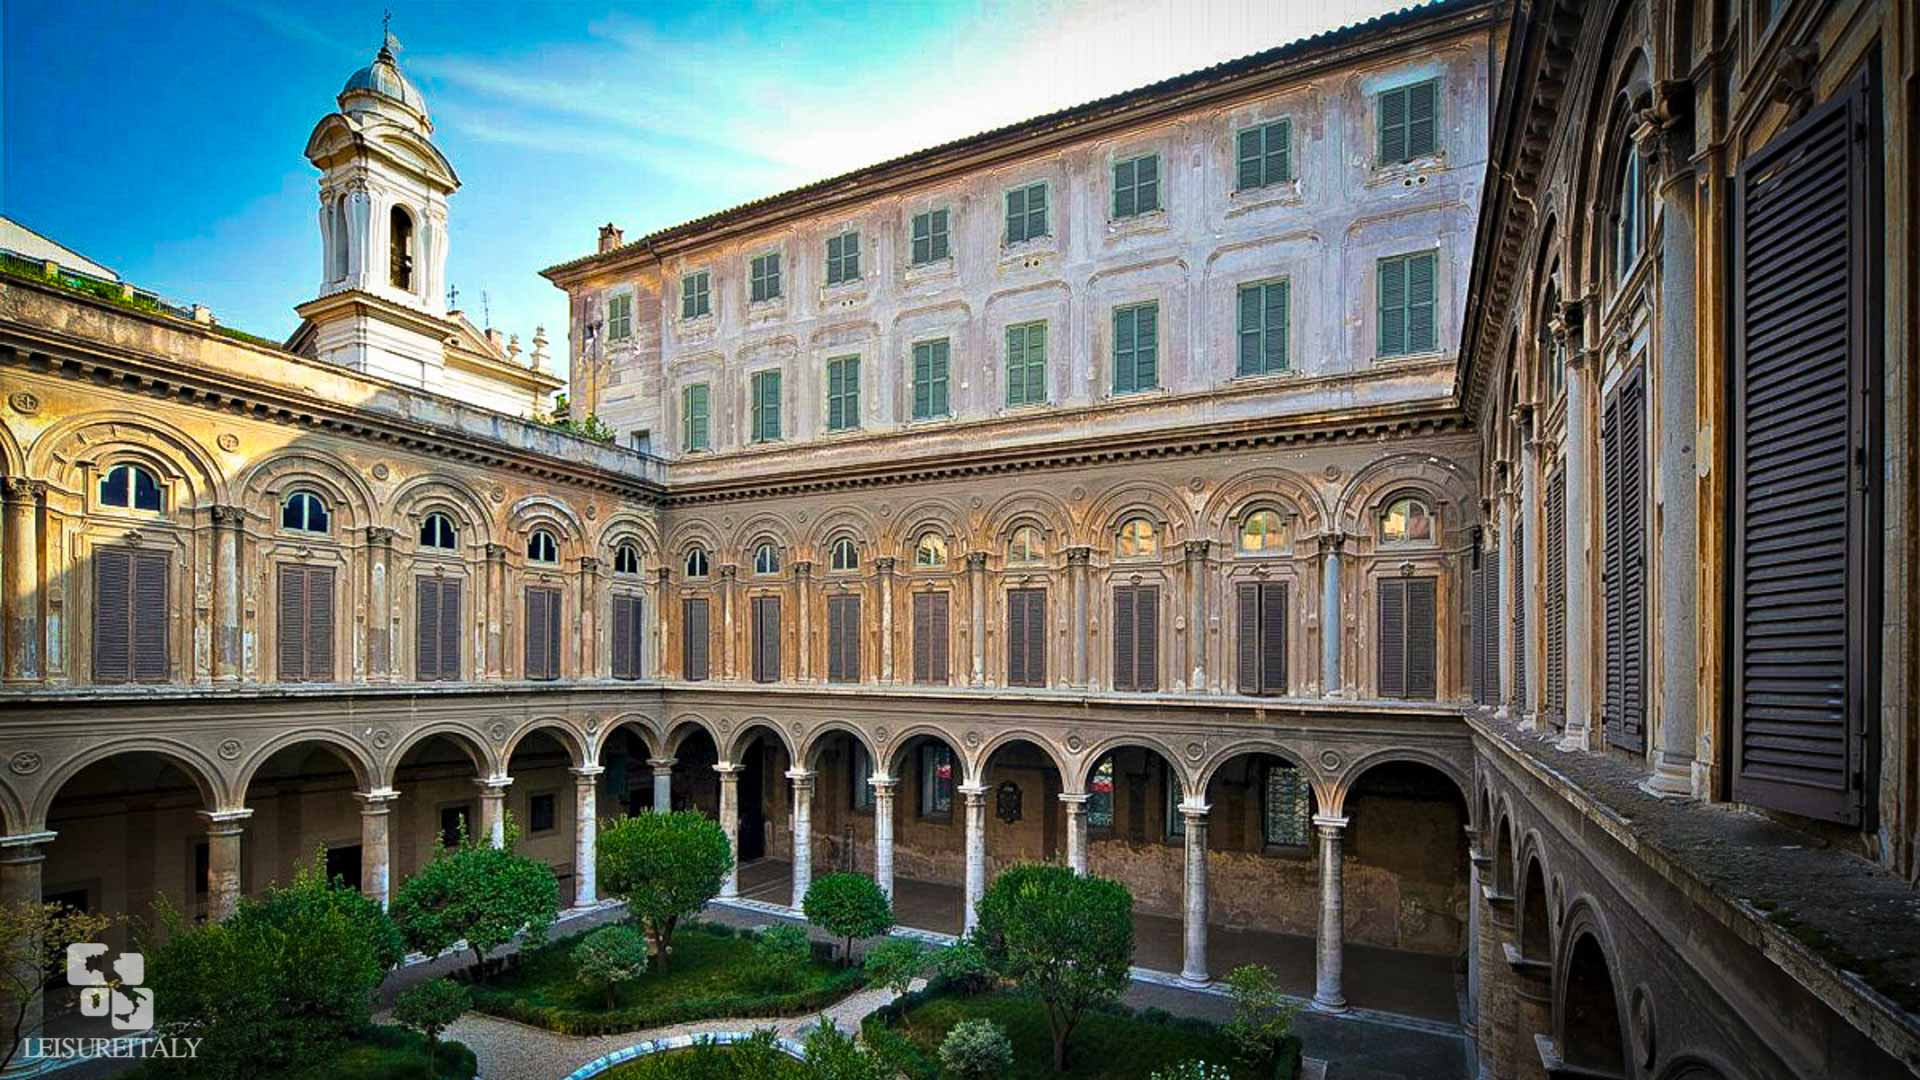 Doria Pamphilj Gallery - The Courtyard of the Palace